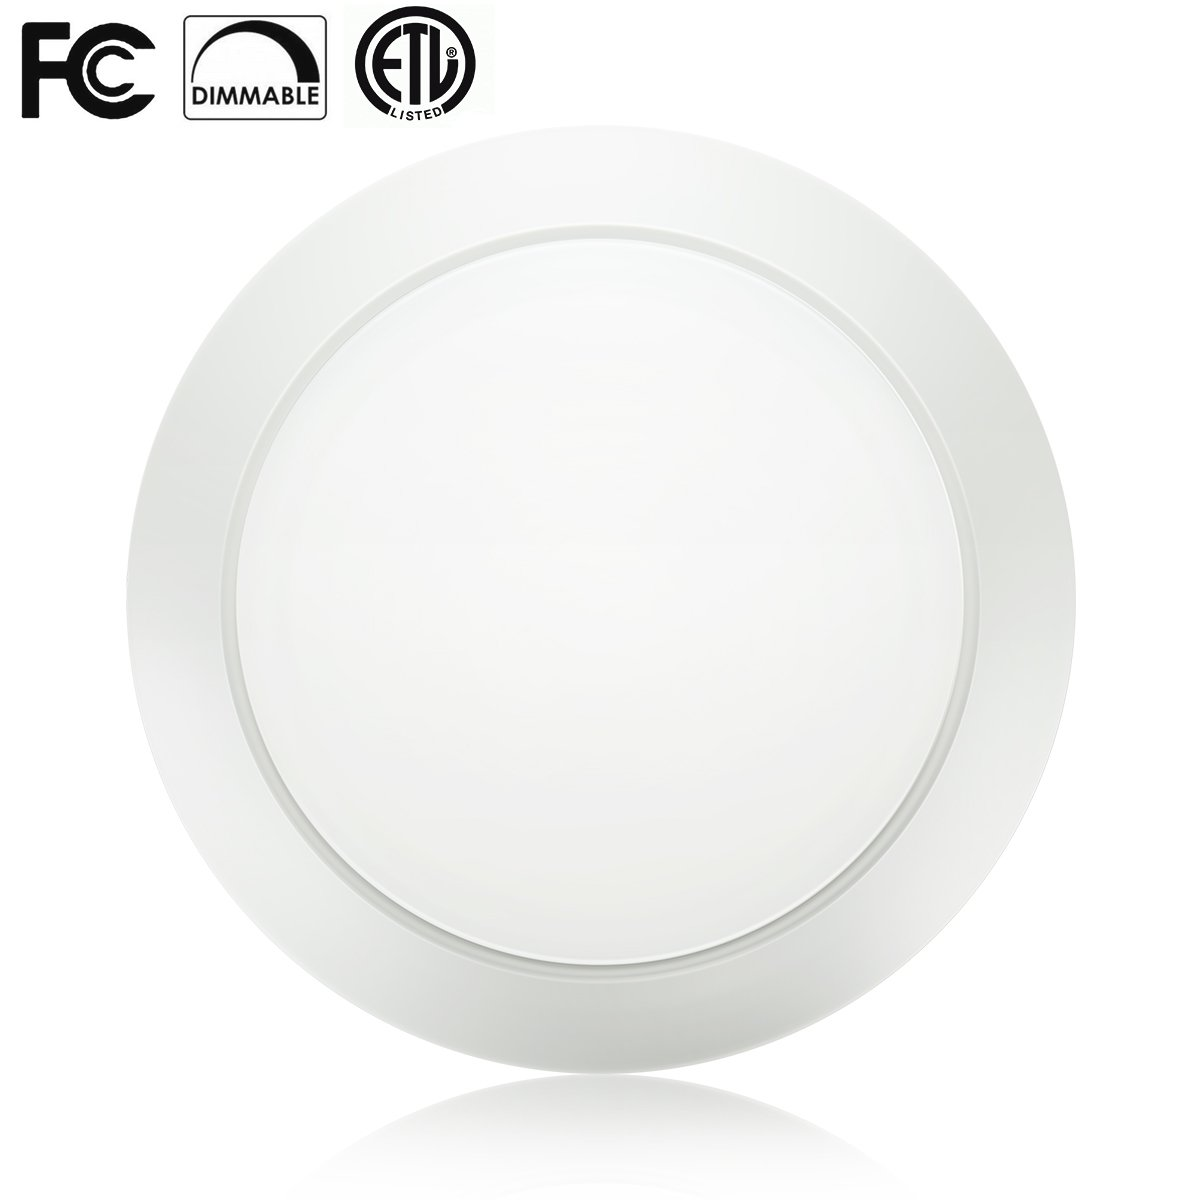 Dimmable LED Disk Light Flush Mount Ceiling Fixture with ETL FCC Listed, 7.5 inch,950LM, 15W (90W Equiv.), Warm White, 3000K, White Finish, Ultra-Thin, Round LED Light for Home, Hotel, Office